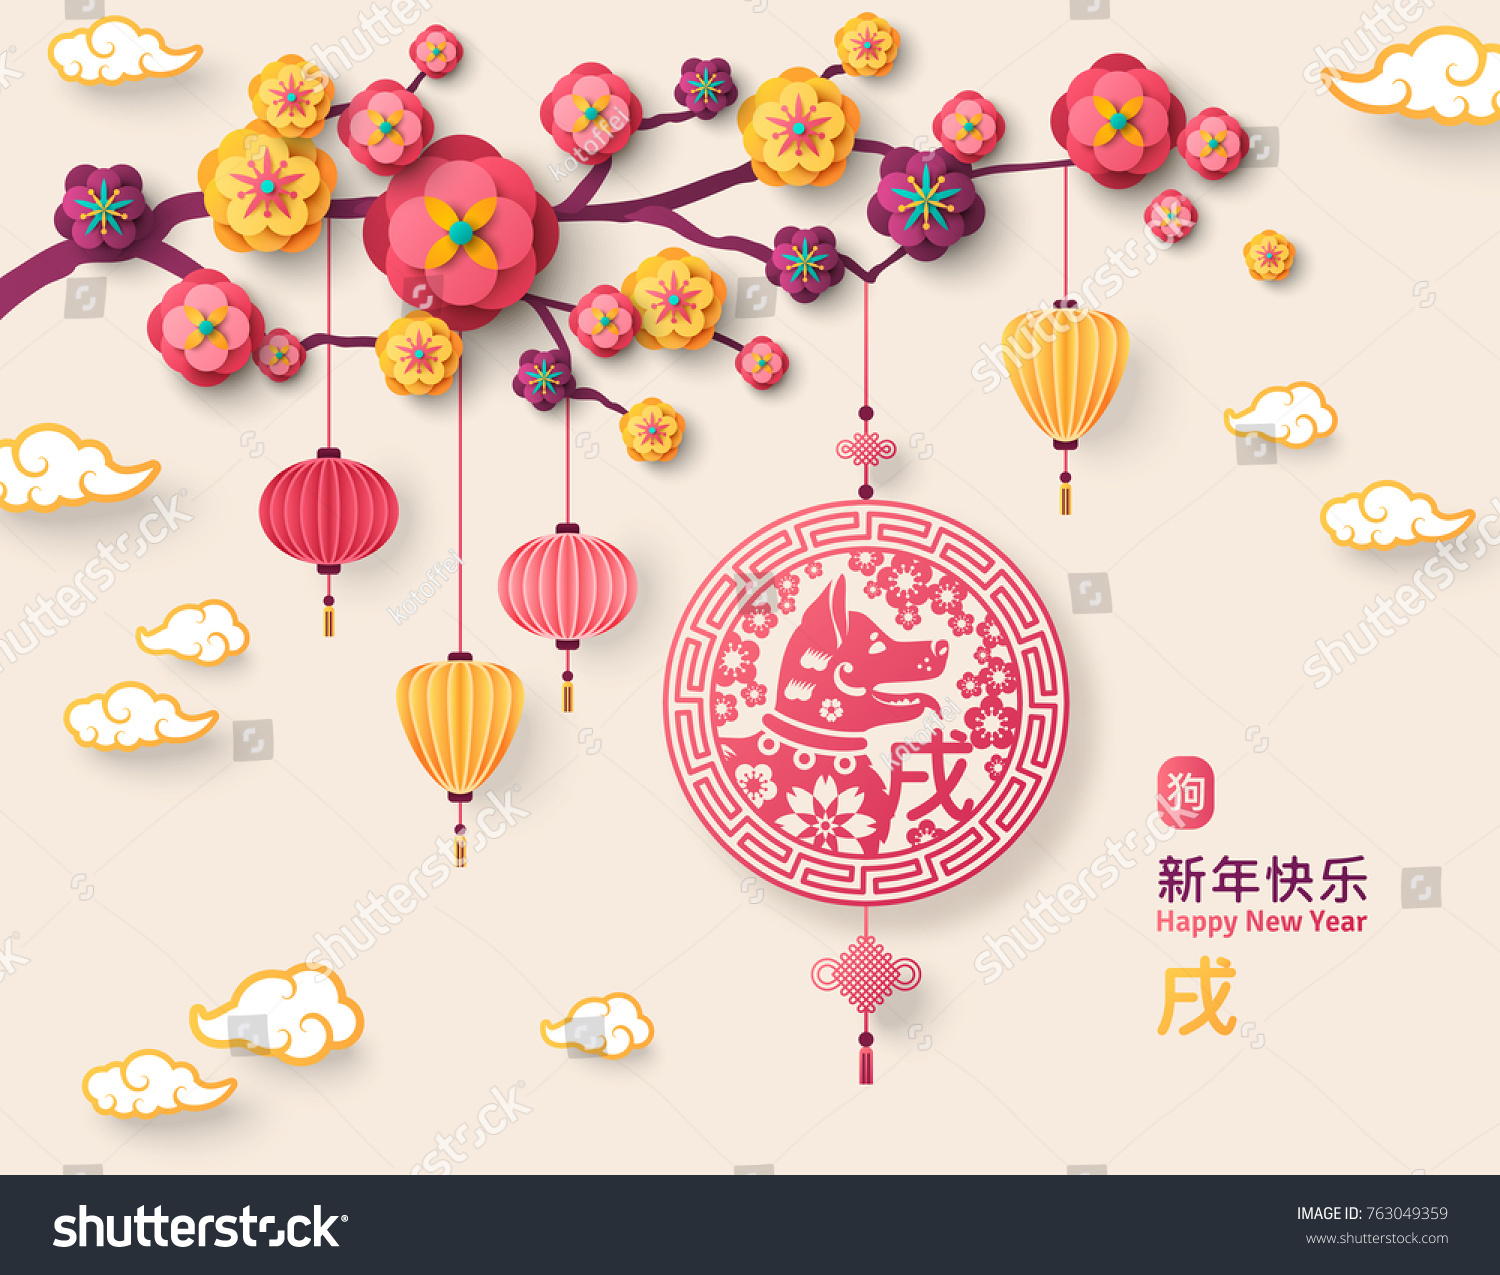 2018 chinese greeting card with sakura branch long hieroglyphs translation happy new year